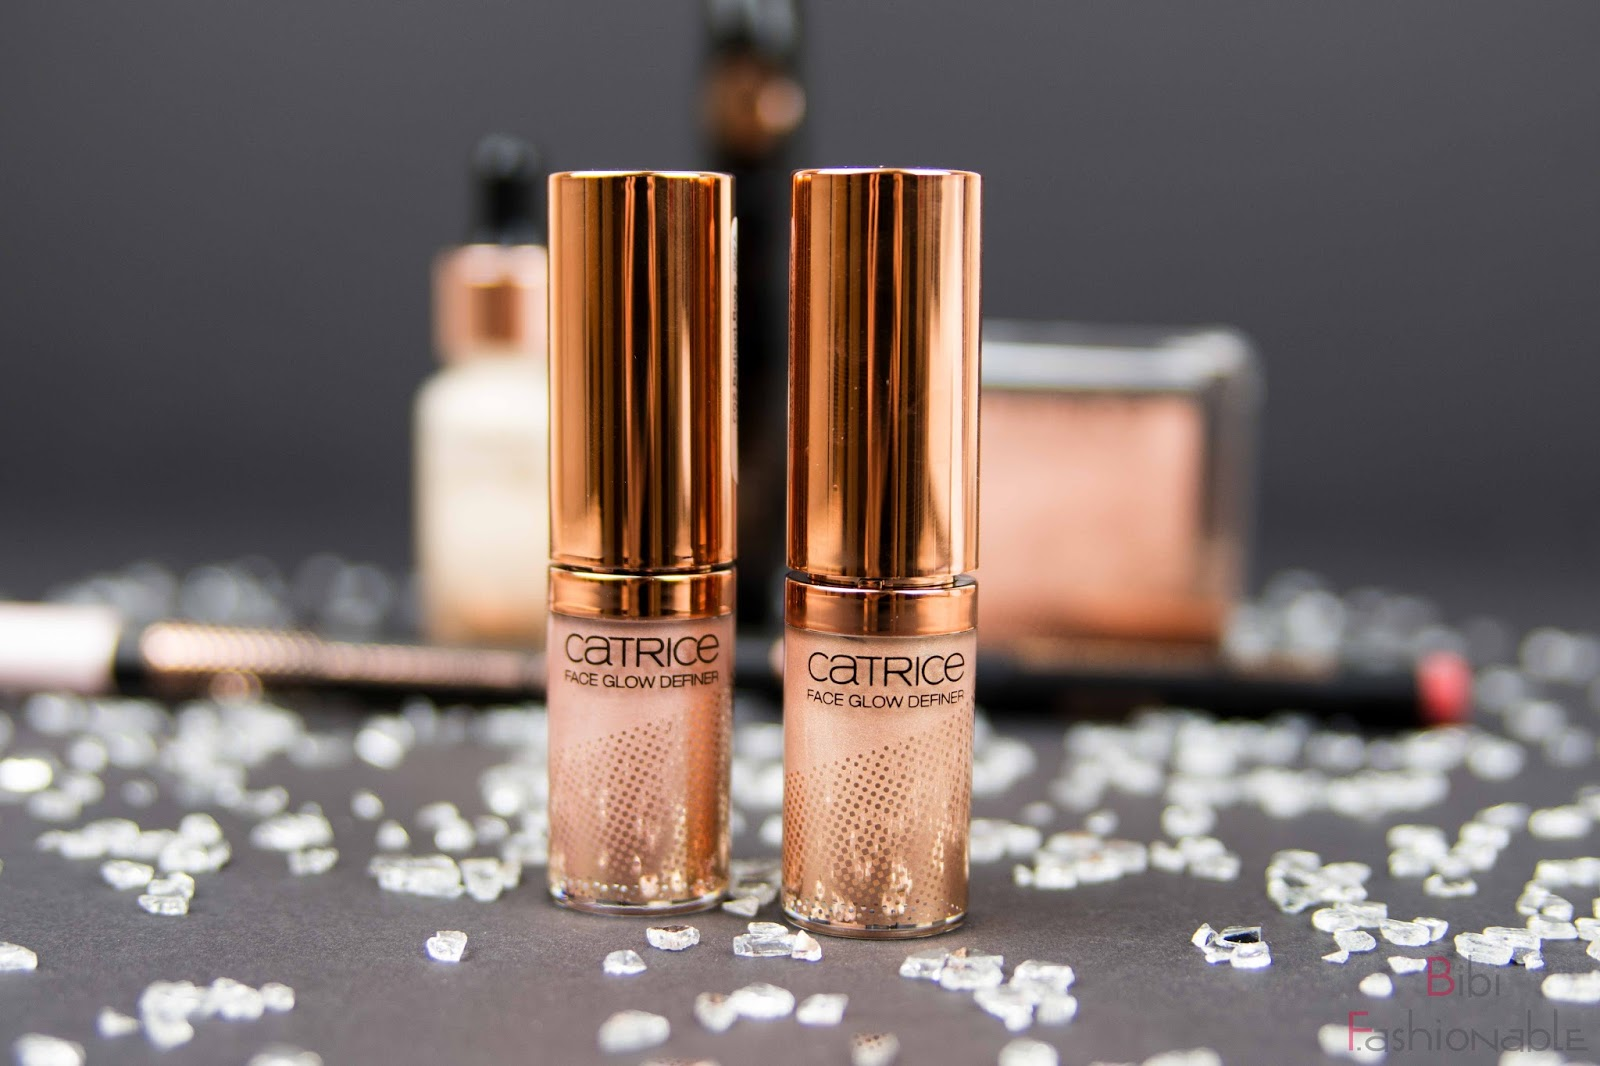 Catrice Pret a lumiere limited edition face glow definer golden glow radiant rose